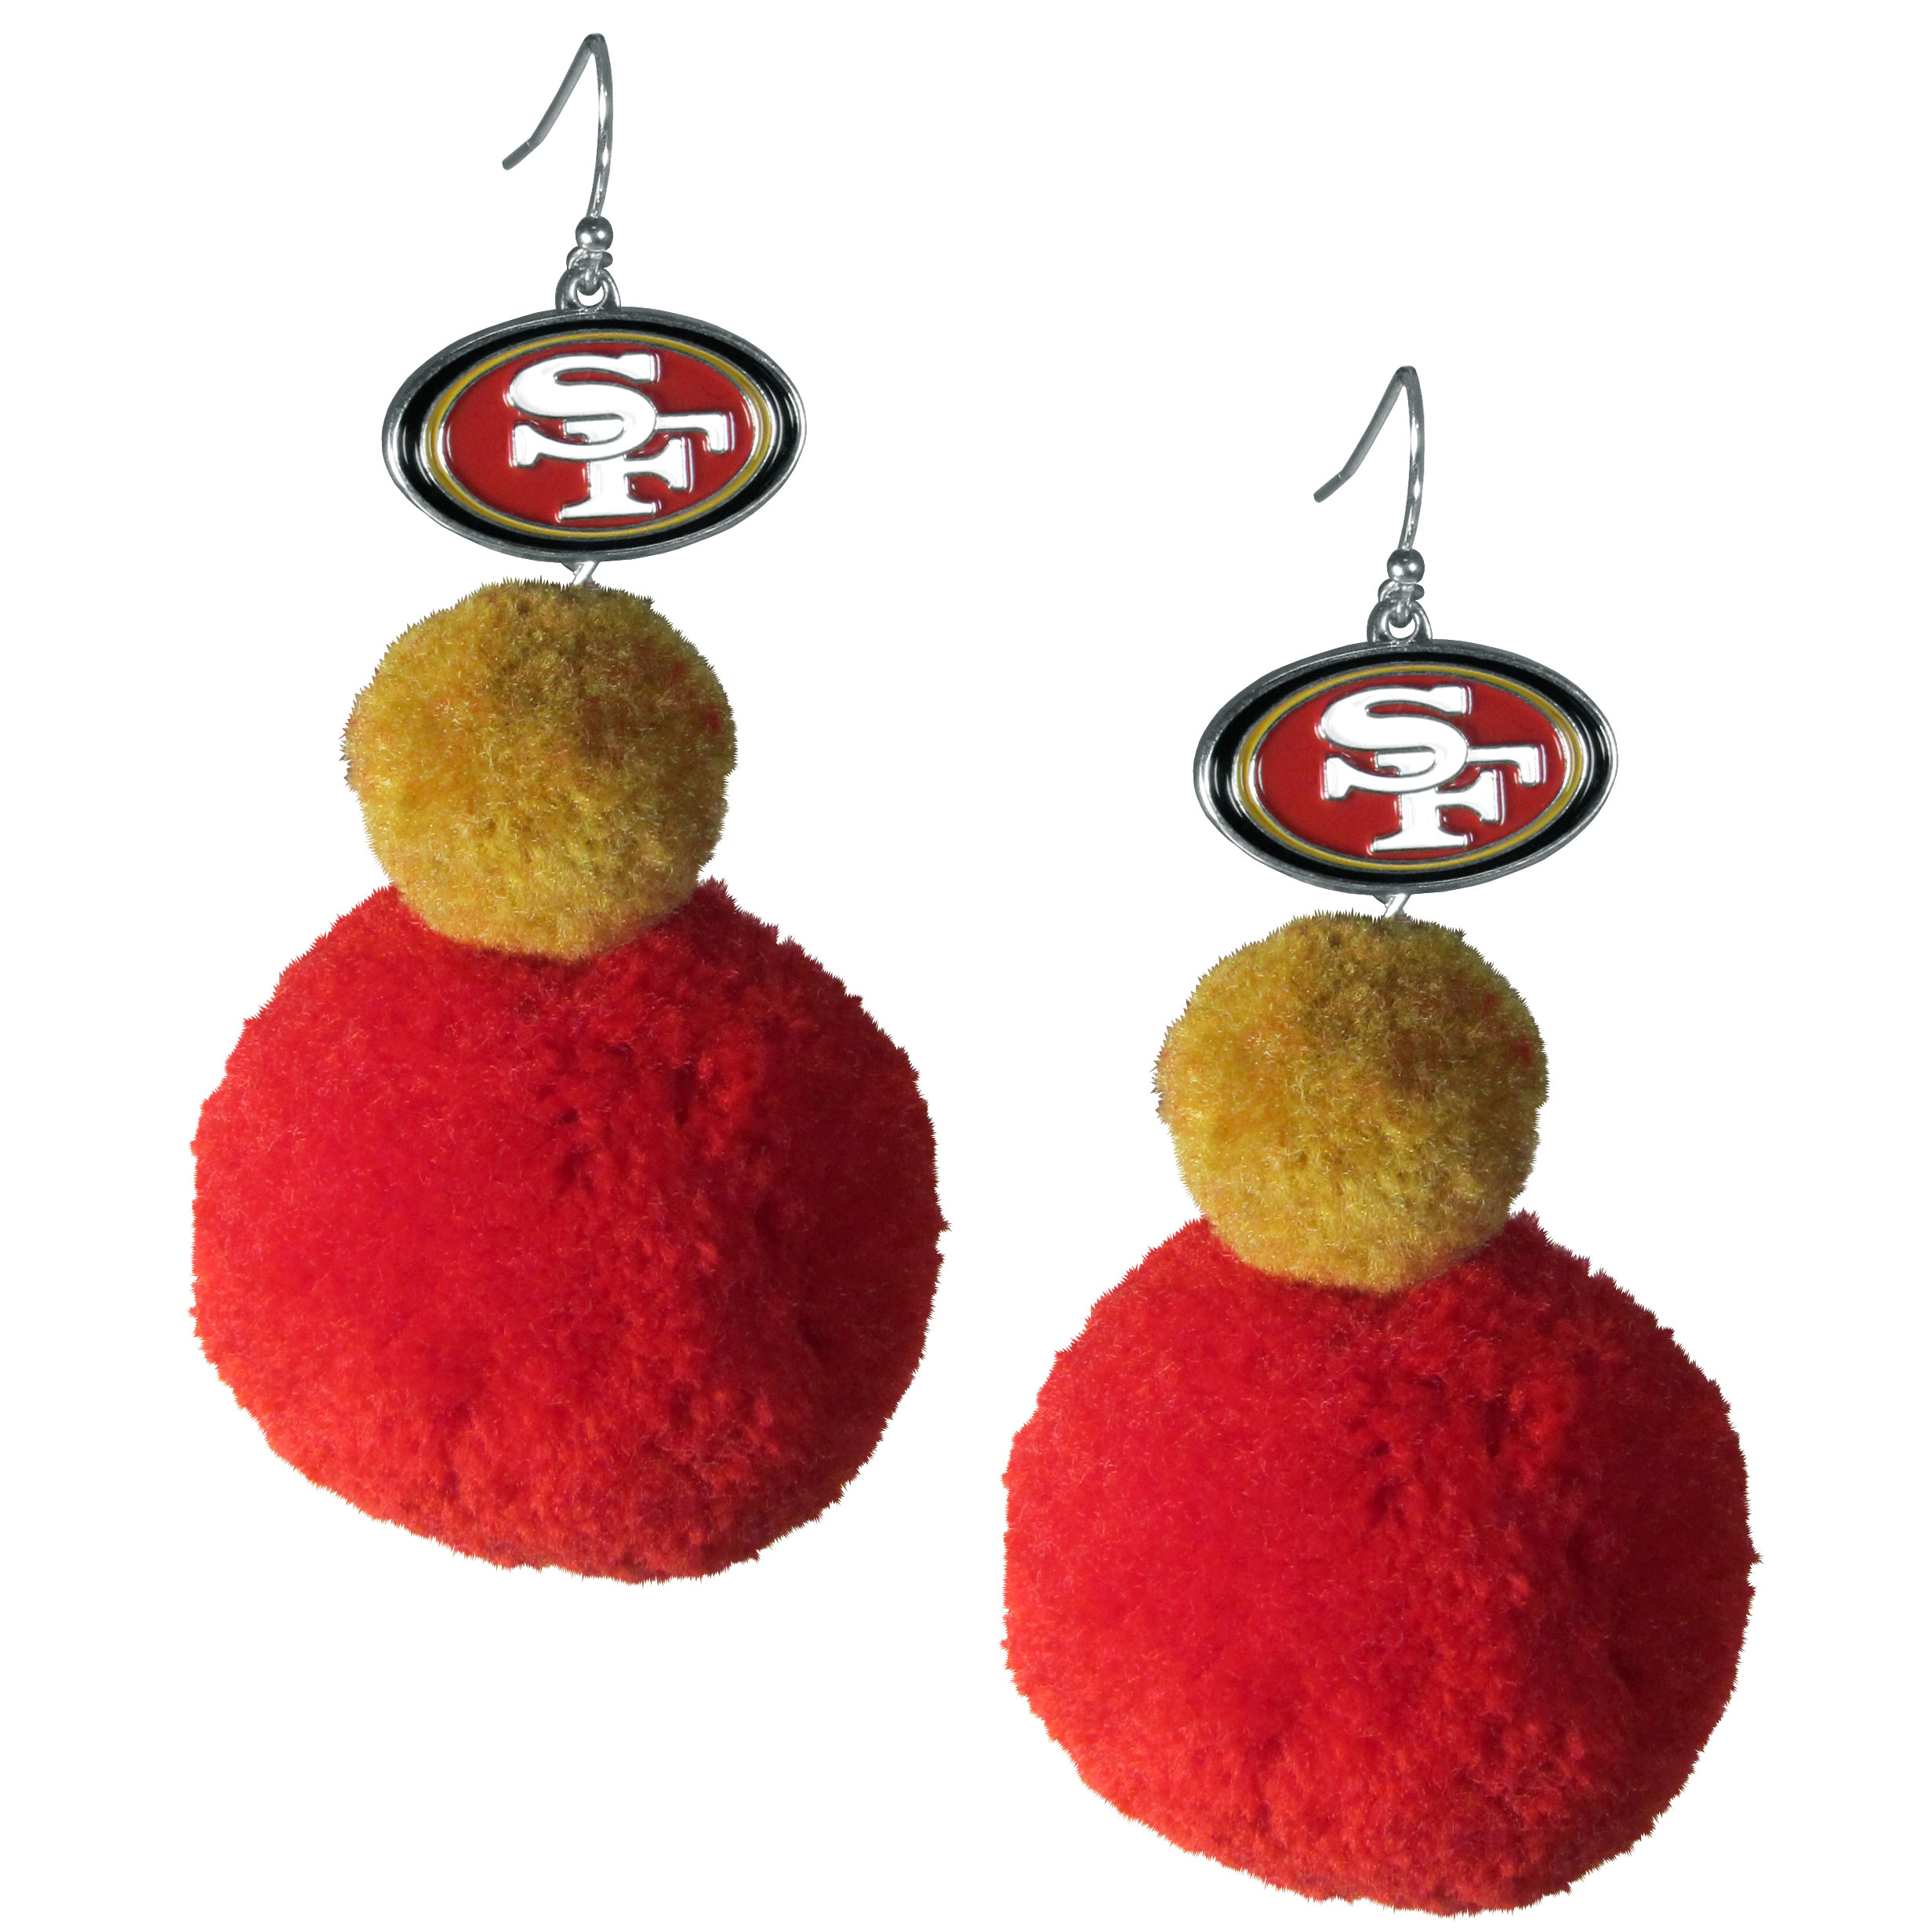 San Francisco 49ers Pom Pom Earrings - These fun and bold earrings are a game day must! The earrings feature a metal San Francisco 49ers charm with enameled color details that hangs above to colorful pom pom charms. The largest pom is 1.5 inches round for, the earrings hang at 3.5 inches long. The fishhook posts are nickel free and hypoallergenic.